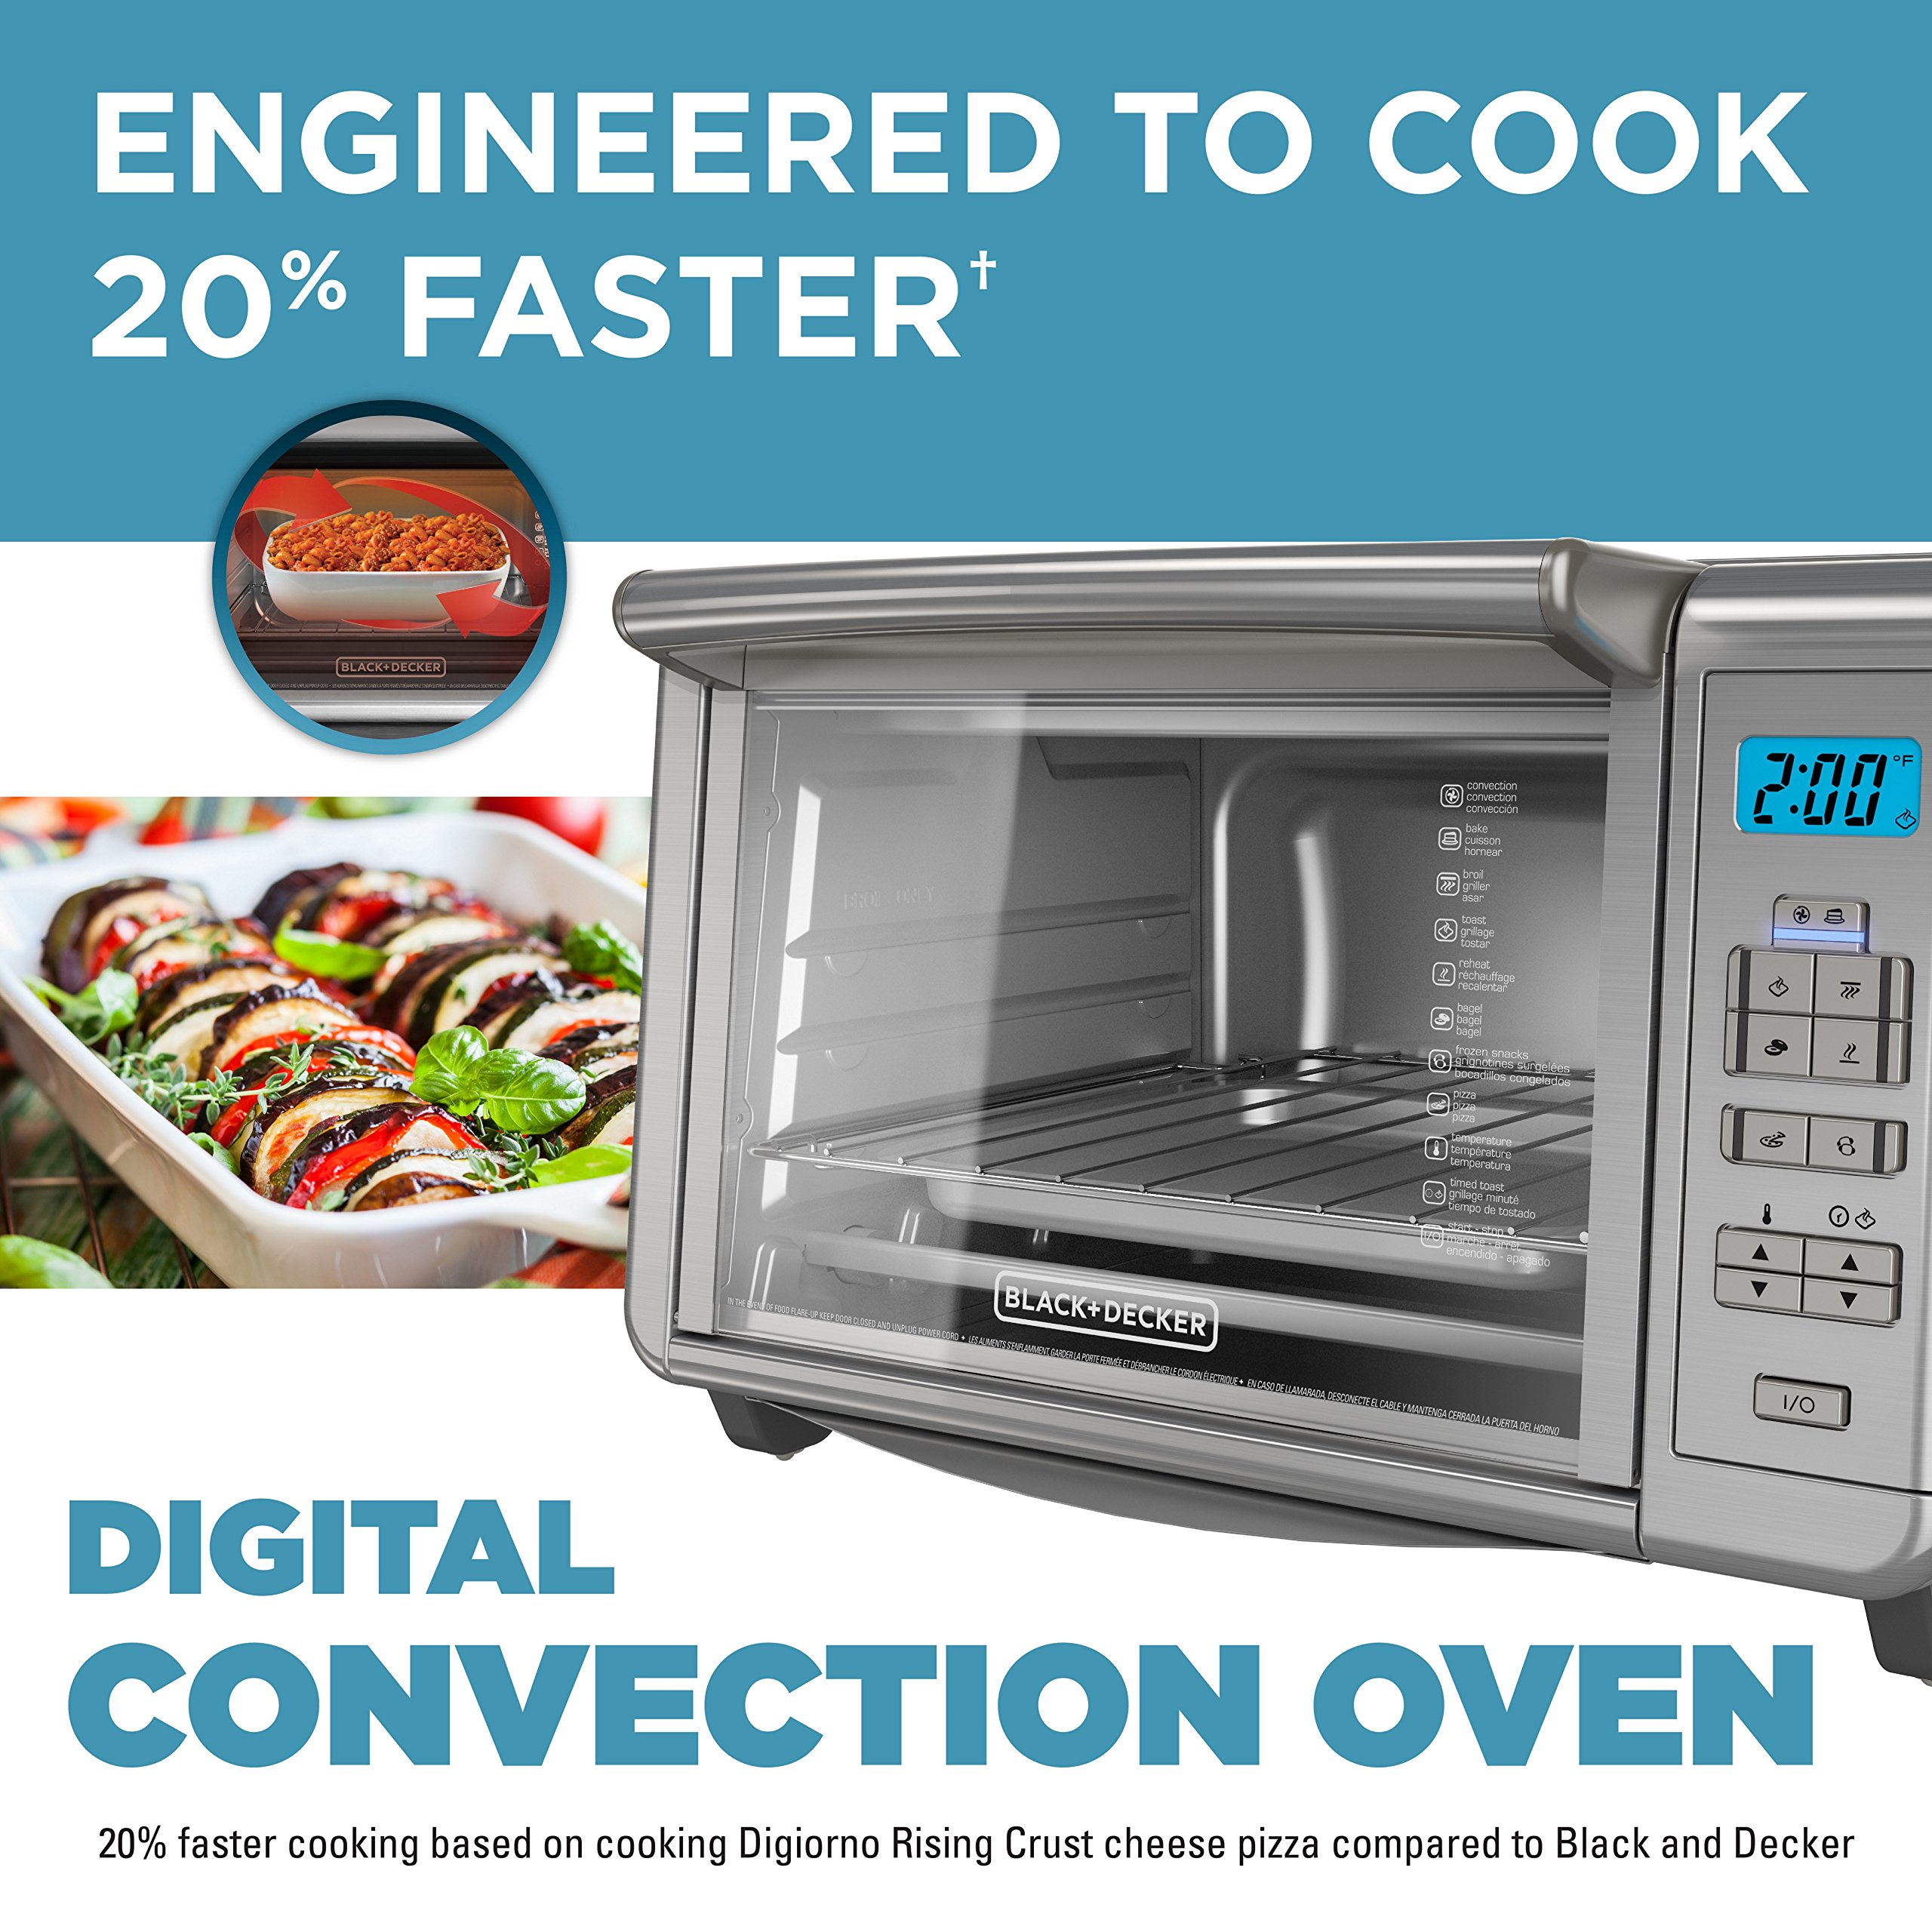 BLACK+DECKER 6-Slice Digital Convection Countertop Toaster Oven, Stainless Steel, TO3280SSD by BLACK+DECKER (Image #2)